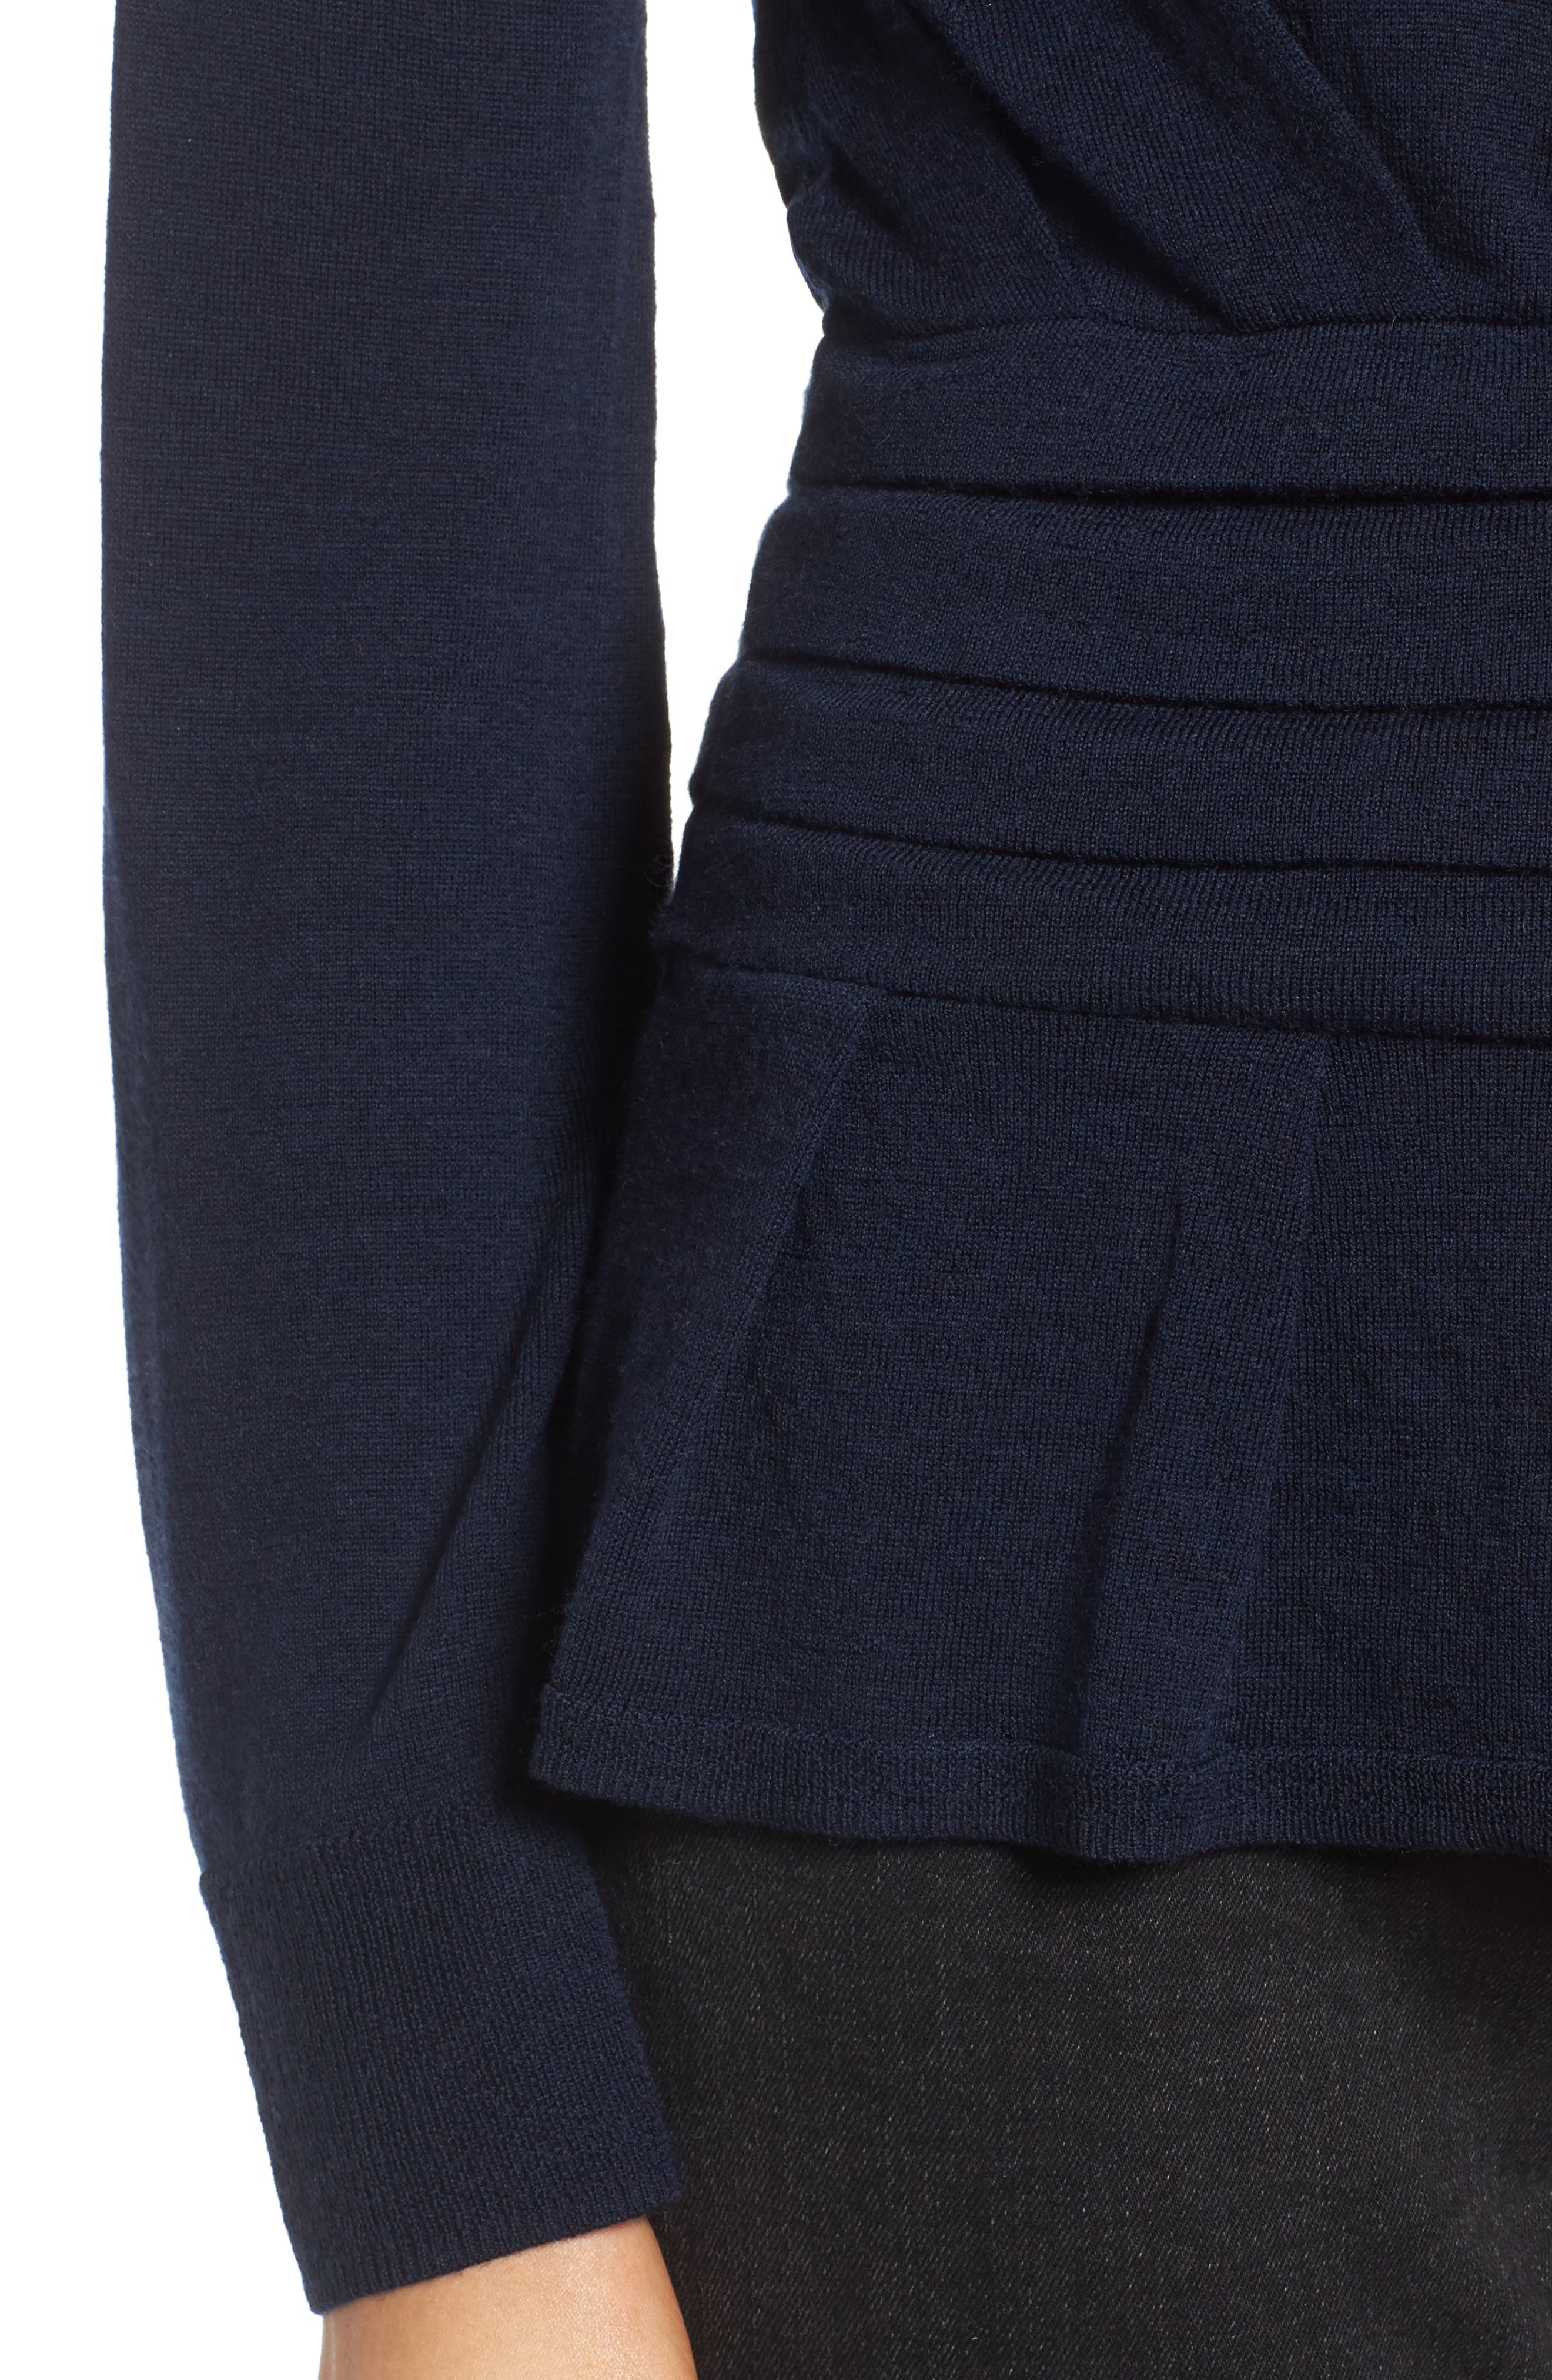 x Something Navy One-Sleeve Sweater,                             Alternate thumbnail 4, color,                             400